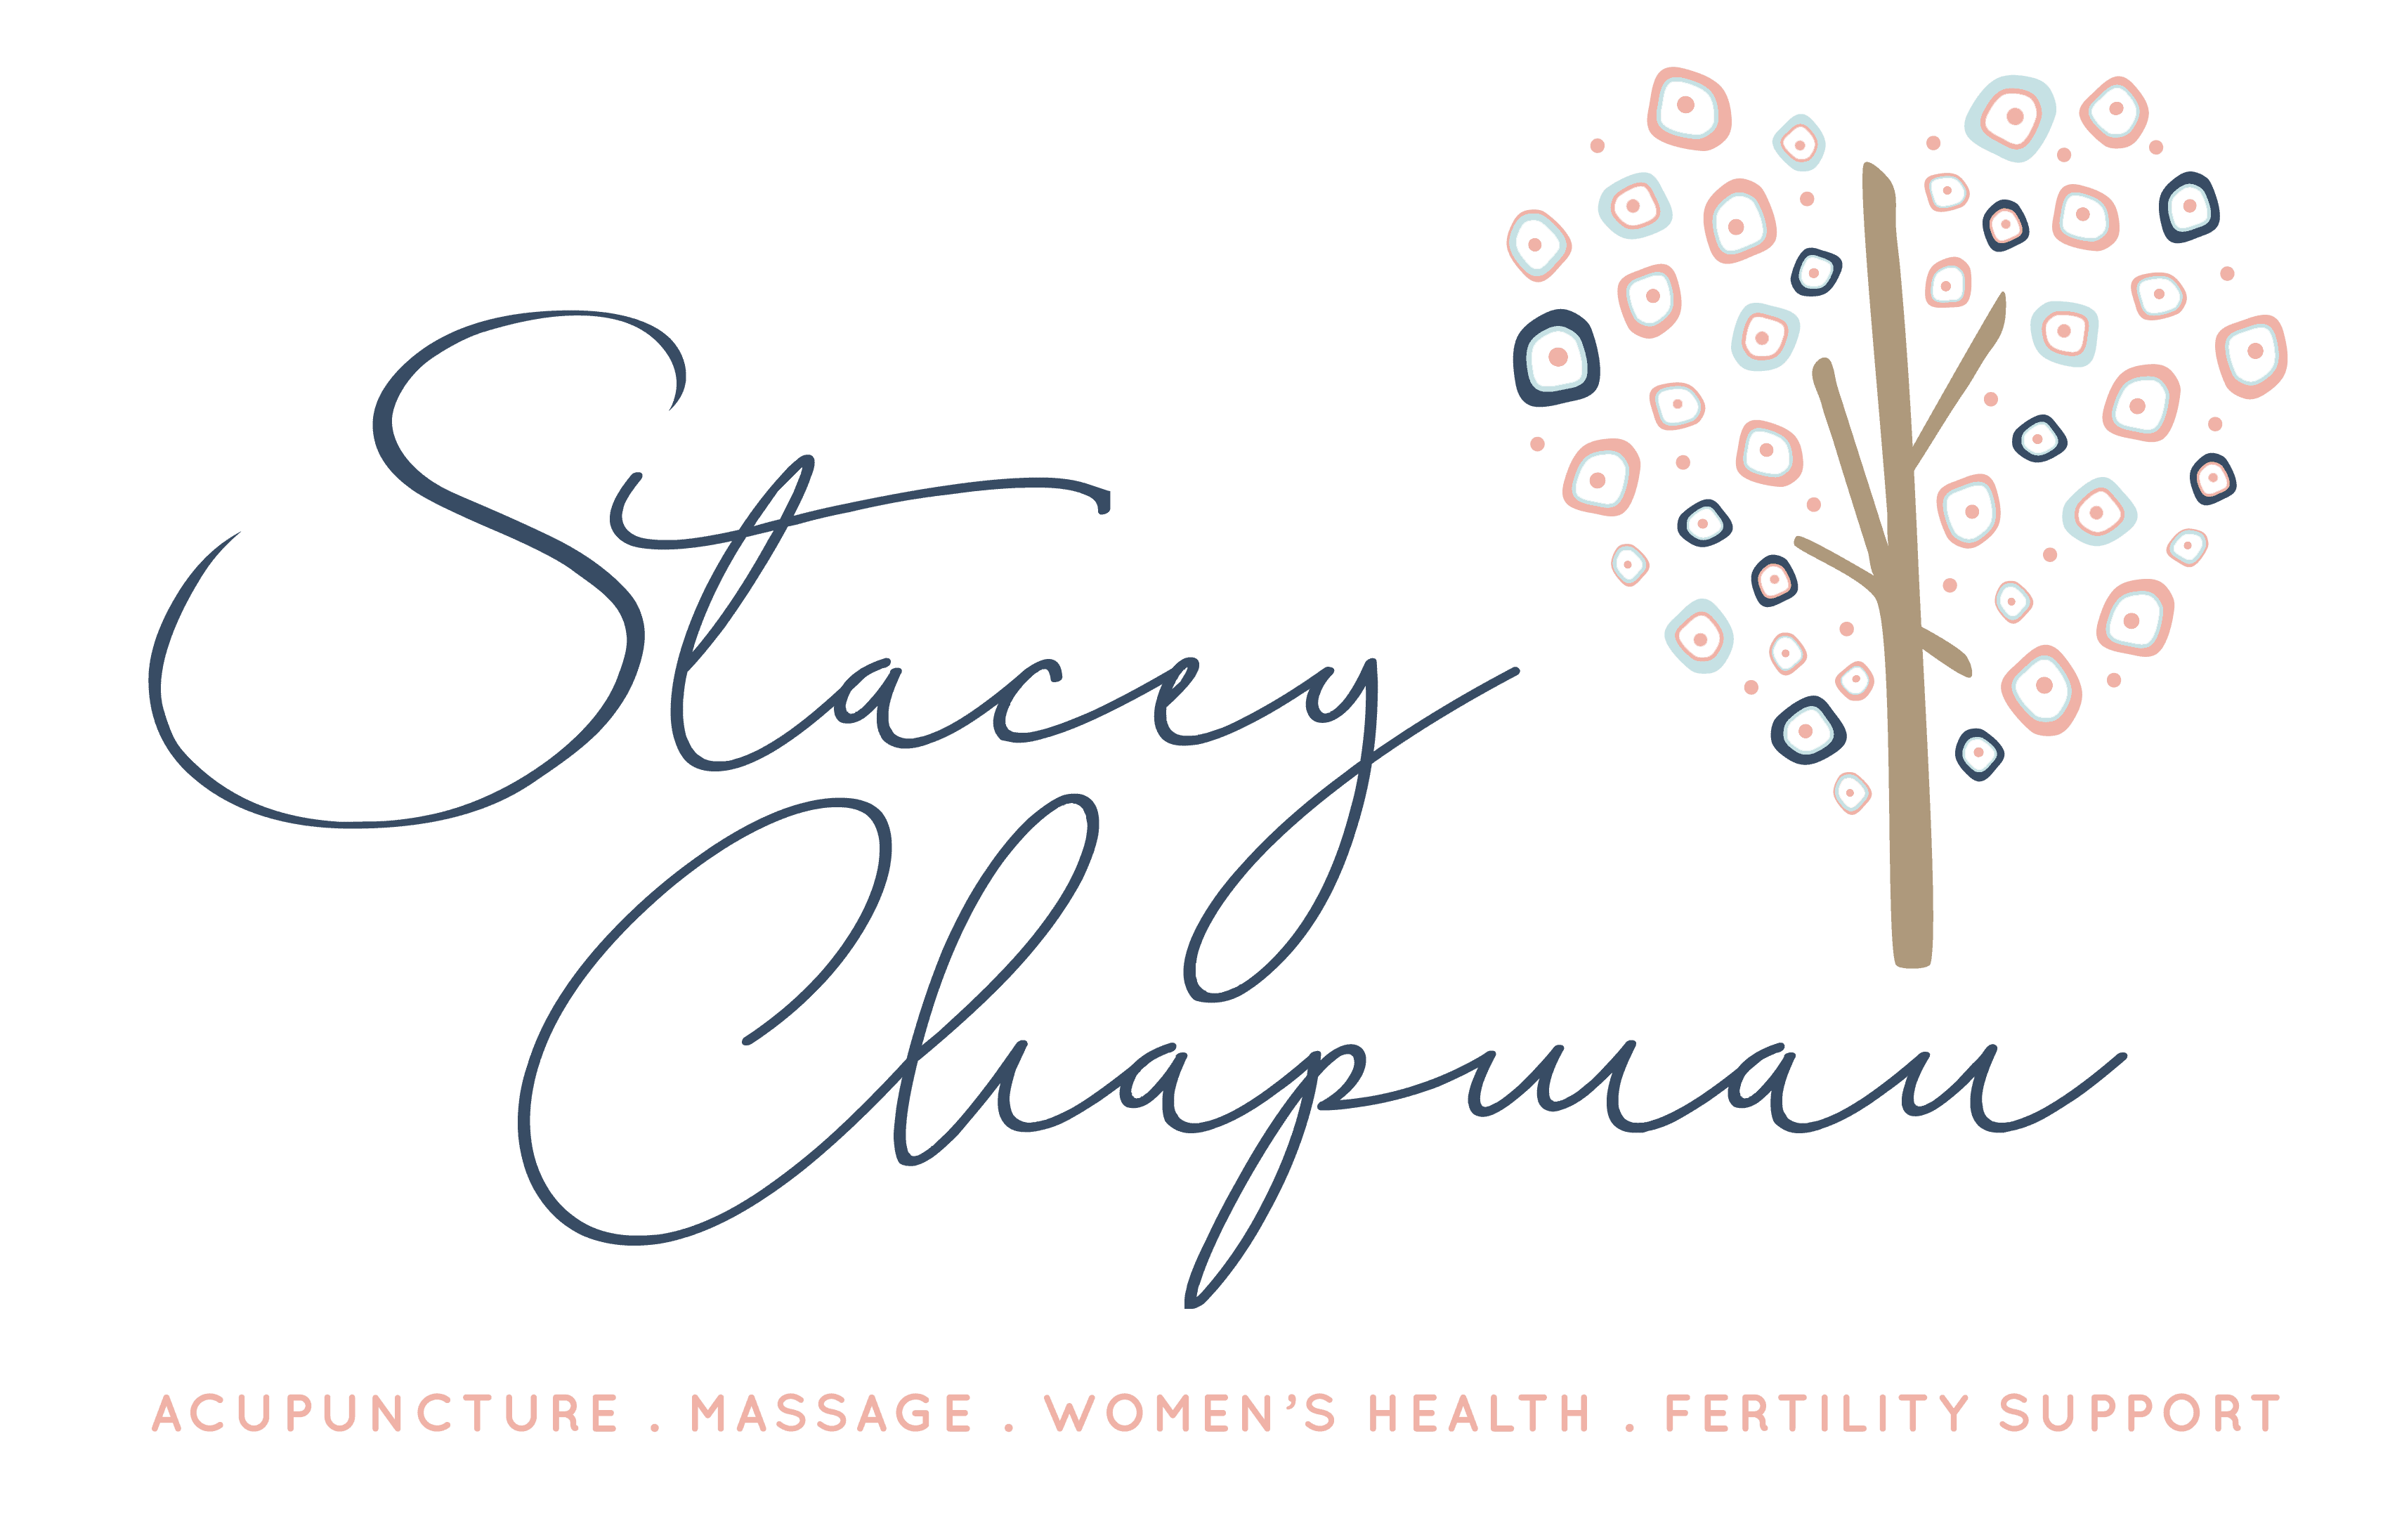 Stacey Chapman Acupuncture